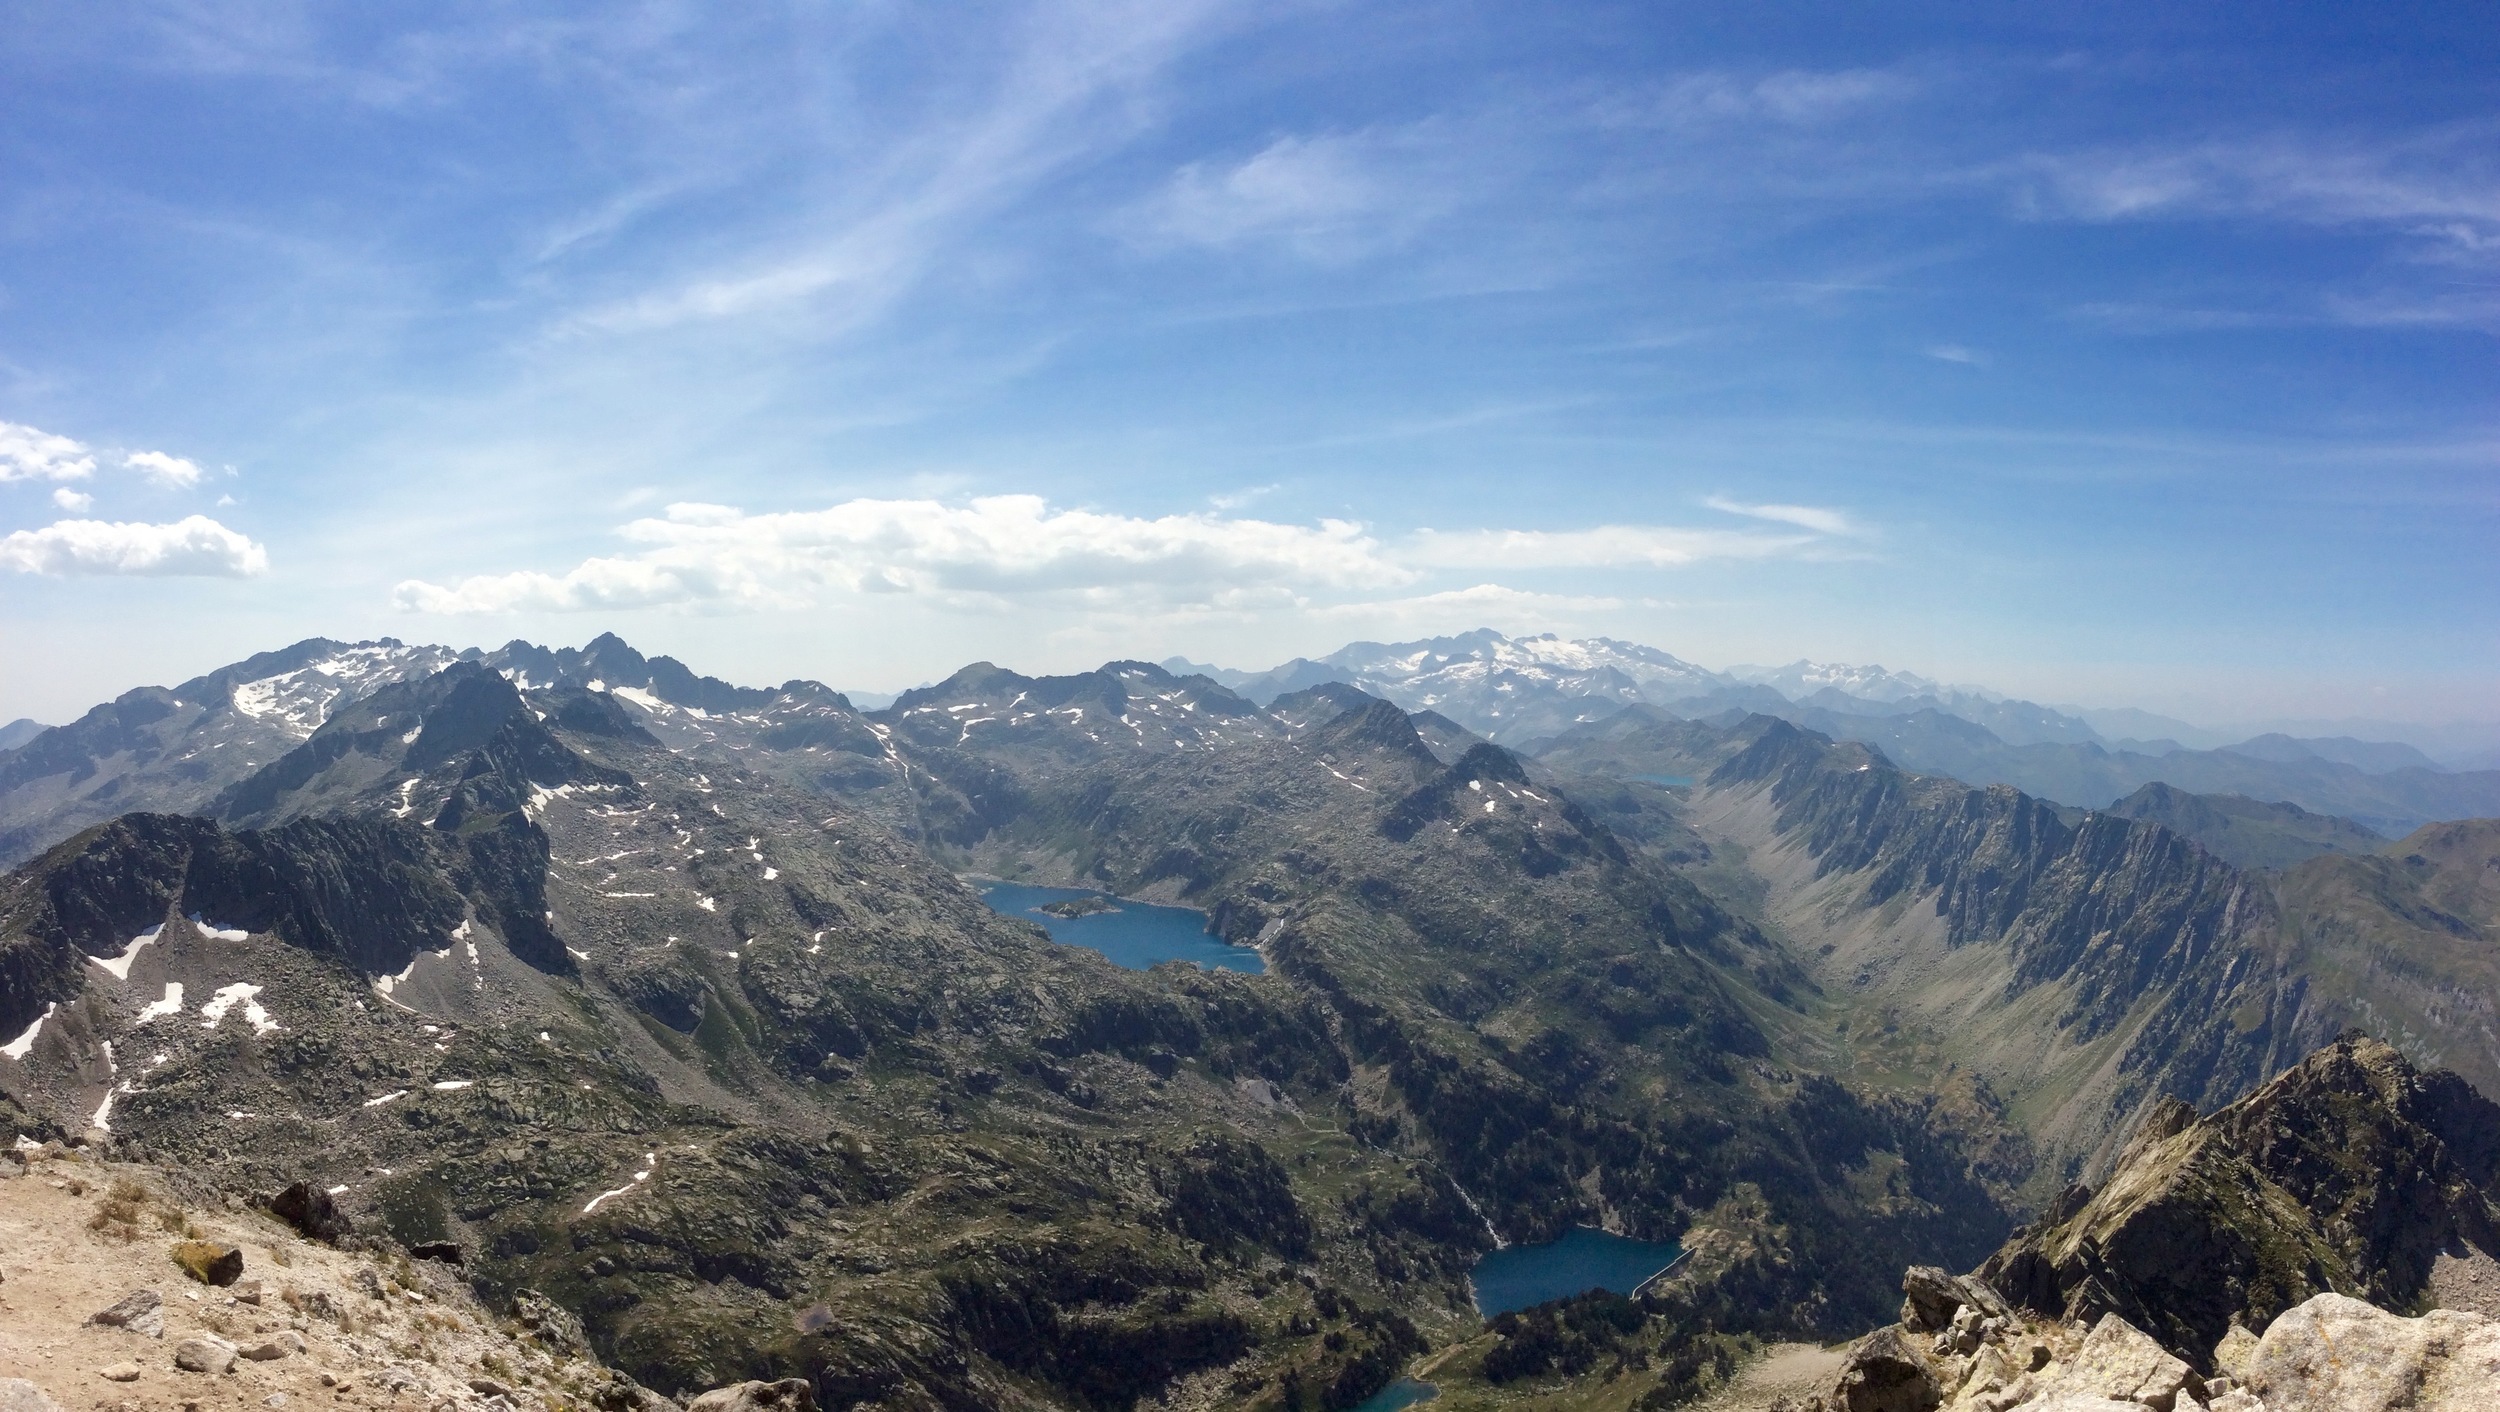 From the summit of Montardo d'Aran, looking west towards Aneto (the highest peak in the Pyrenees)